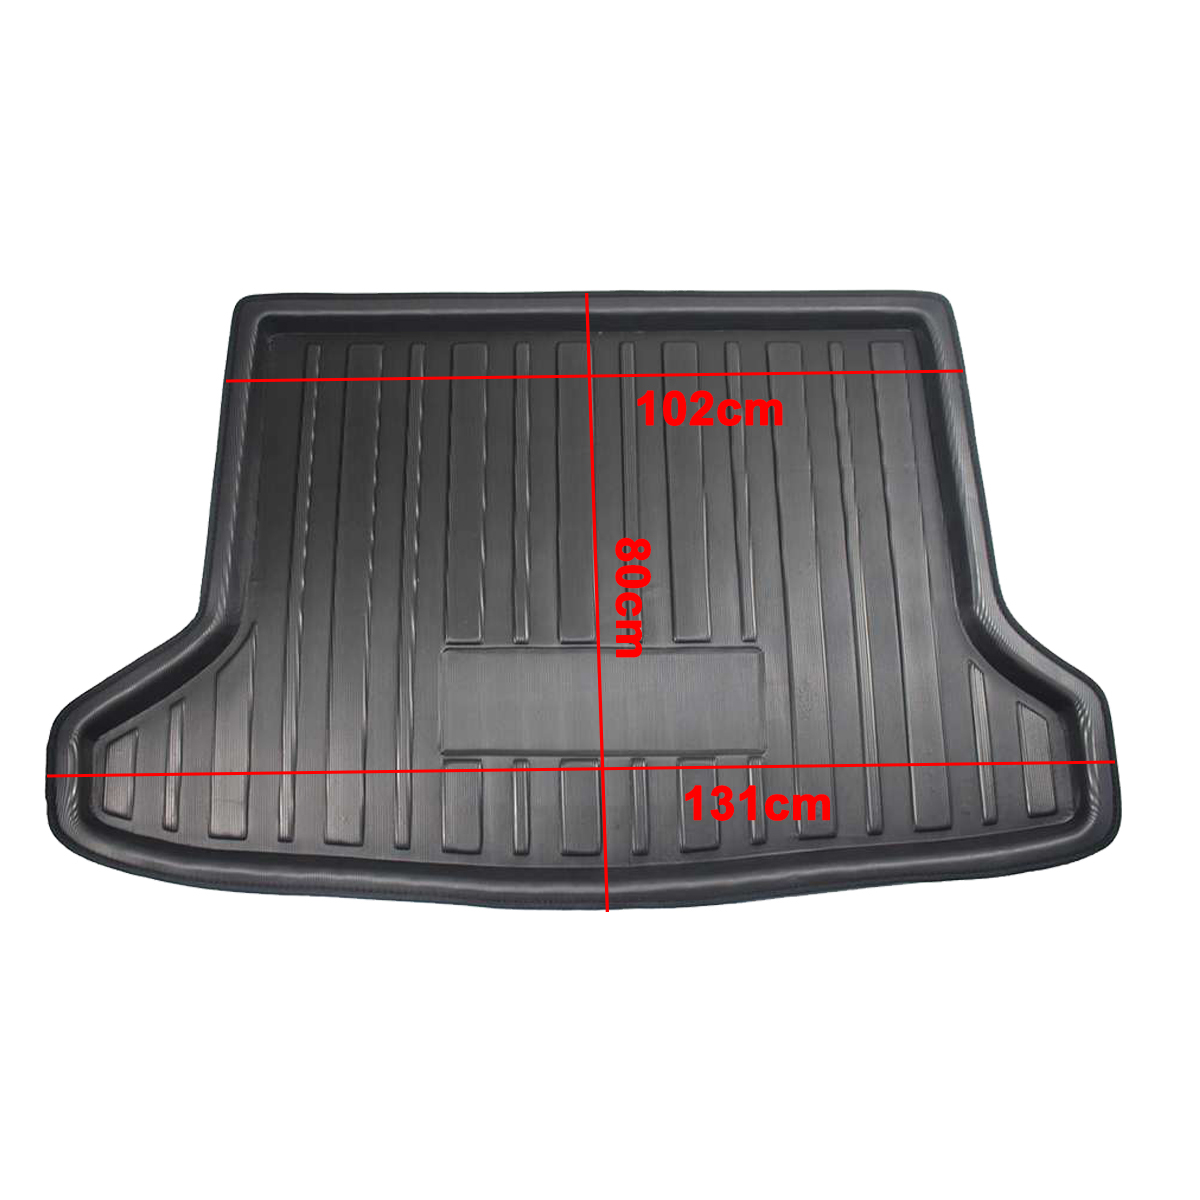 Trunk-Cover-Matt Floor-Carpet Kick-Pad HRV Cargo-Liner Anti-Dust Rear for Honda Vezel title=